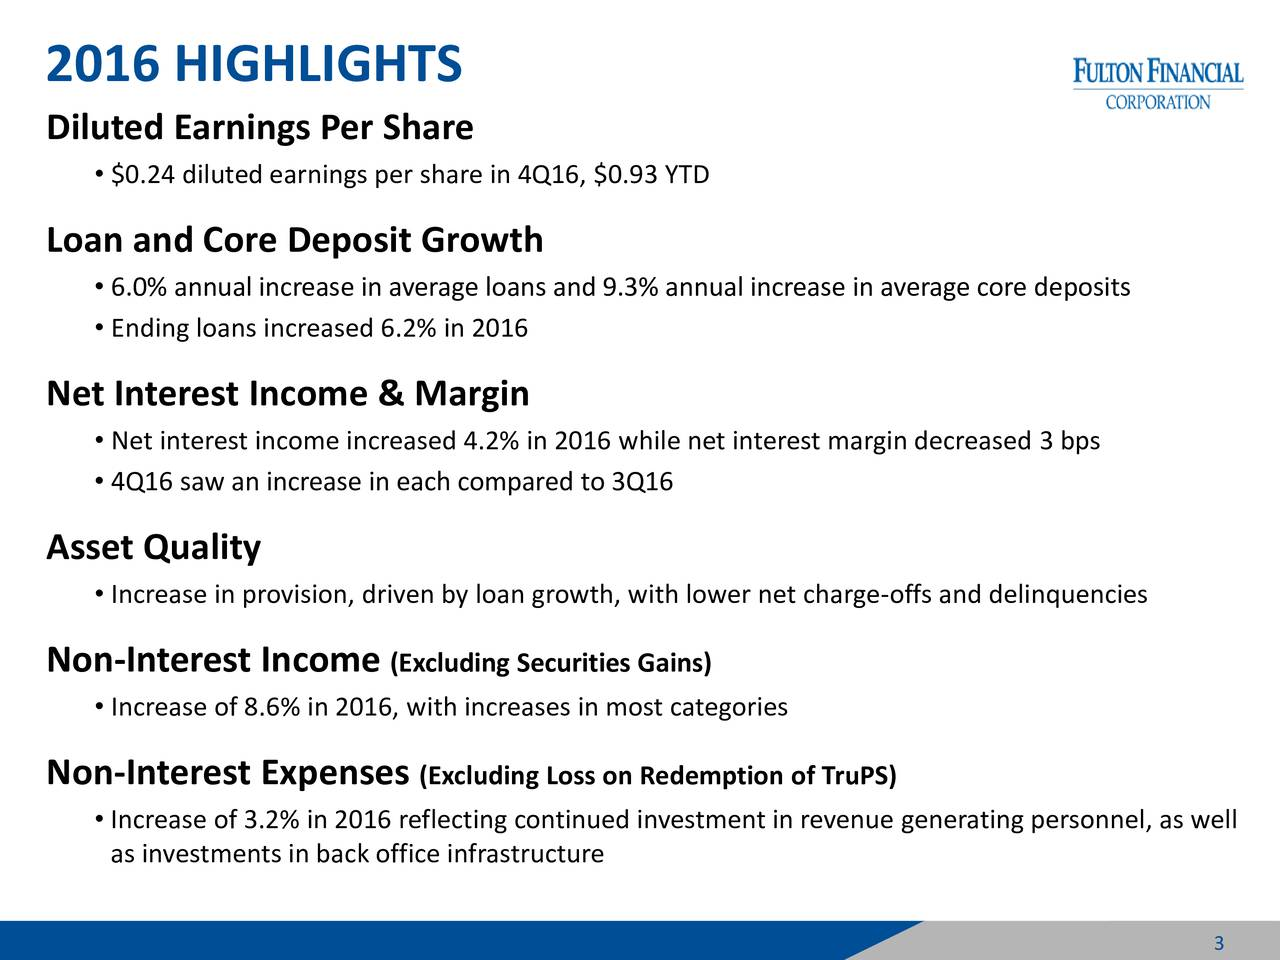 Diluted Earnings Per Share $0.24 diluted earnings per share in 4Q16, $0.93 YTD Loan and Core Deposit Growth 6.0% annual increase in average loans and 9.3% annual increase in average core deposits Ending loans increased 6.2% in 2016 Net Interest Income & Margin Net interest income increased 4.2% in 2016 while net interest margin decreased 3 bps 4Q16 saw an increase in each compared to 3Q16 Asset Quality Increase in provision, driven by loan growth, with lower net charge-offs and delinquencies Non-Interest Income (Excluding Securities Gains) Increase of 8.6% in 2016, with increases in most categories Non-Interest Expenses (Excluding Loss on Redemption of TruPS) Increase of 3.2% in 2016 reflecting continued investment in revenue generating personnel, as well as investments in back office infrastructure